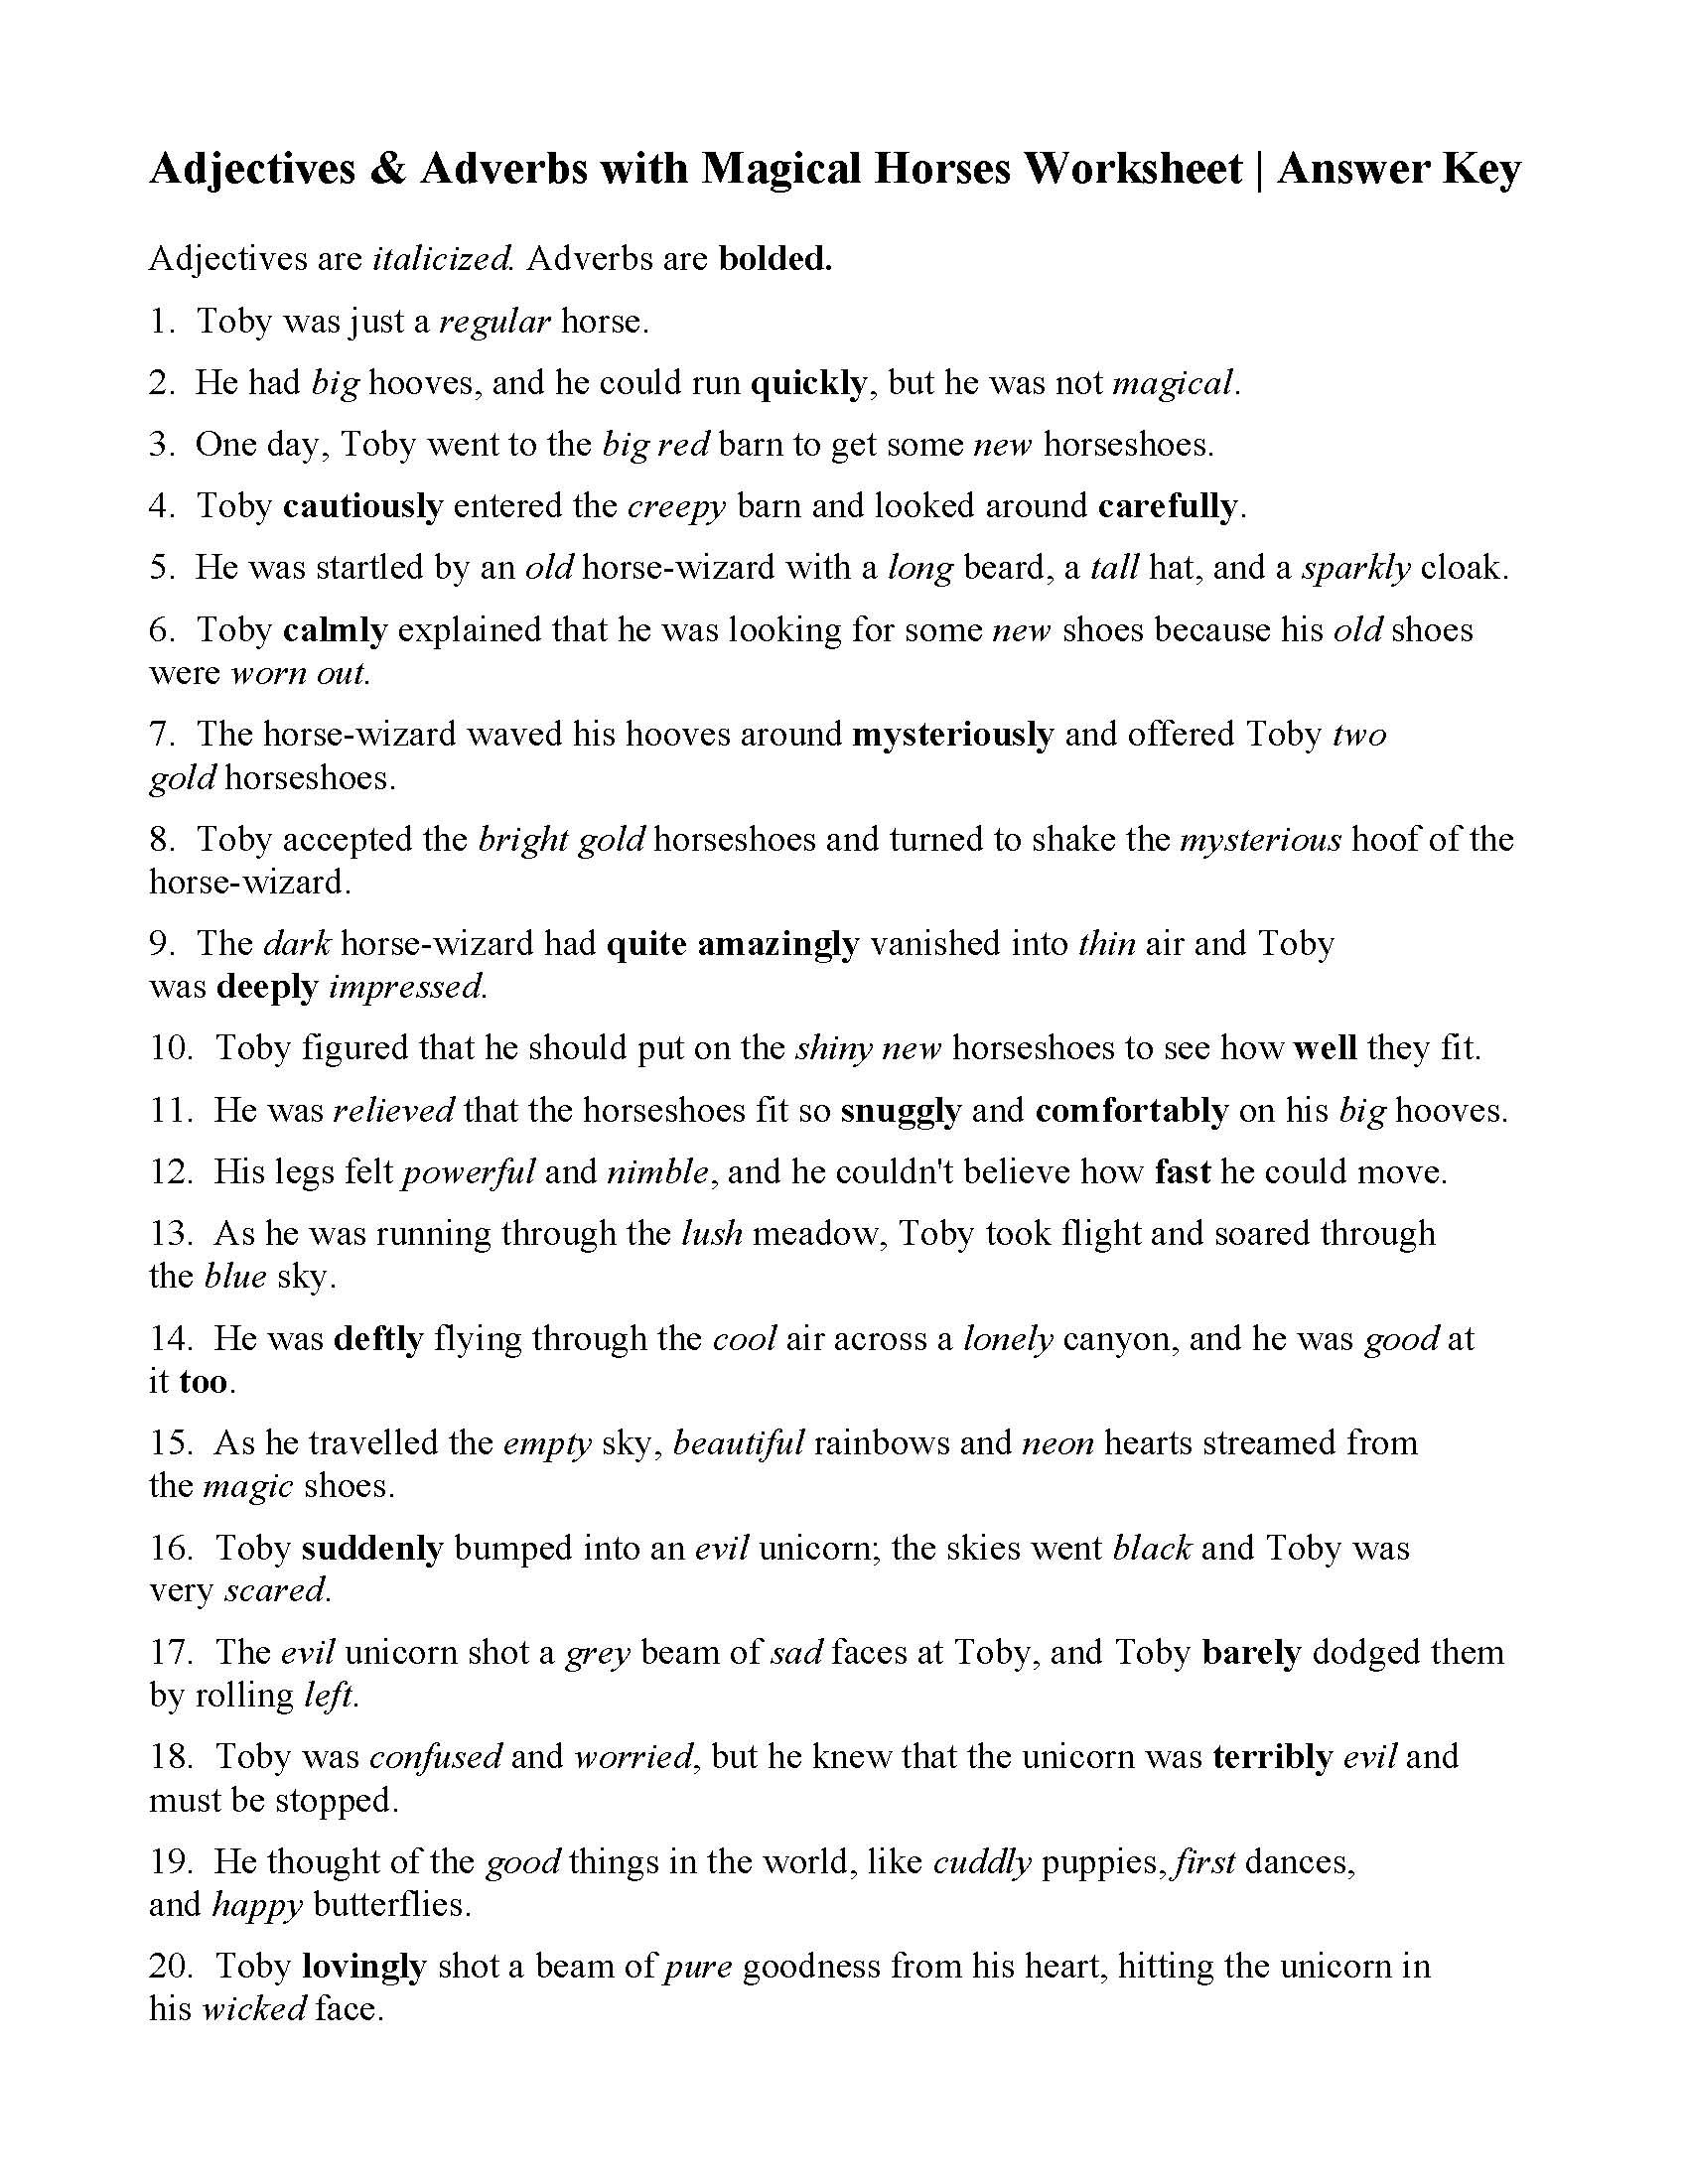 Adjectives And Adverbs With Magical Horses Worksheet  Answers Also Adjective And Adverb Worksheets With Answer Key